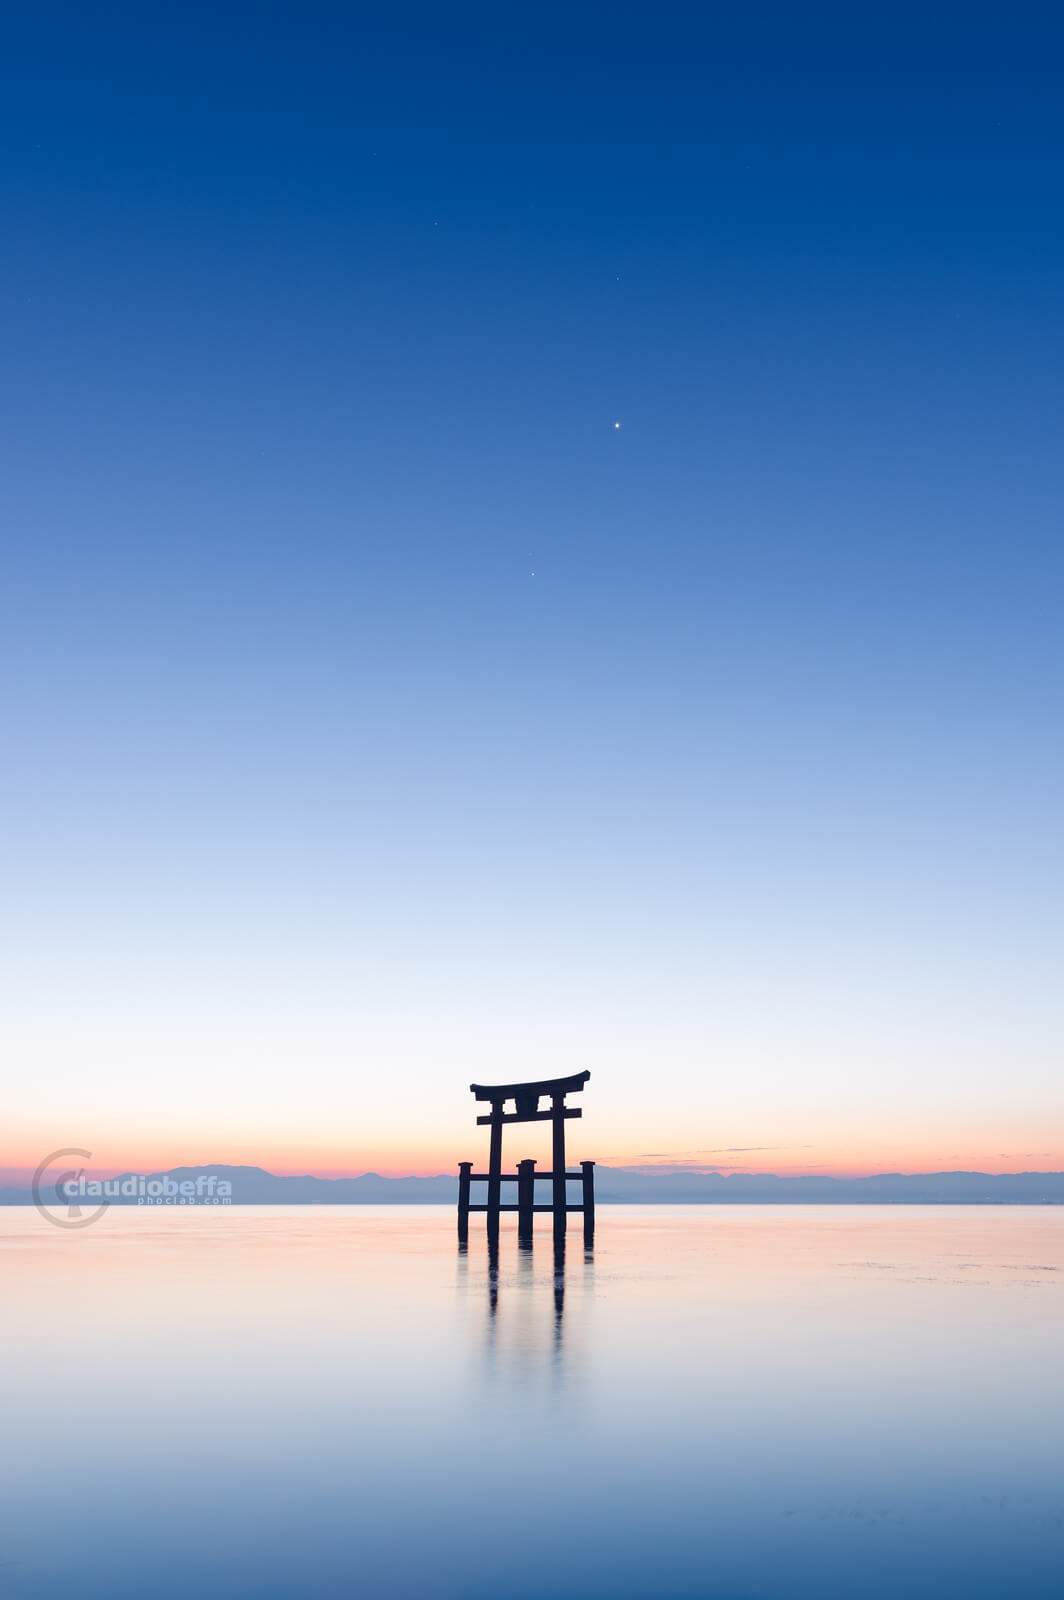 Gate to the stars, Gate, Torii, Shinto, Sunrise, Light, Stars, Water, Reflections